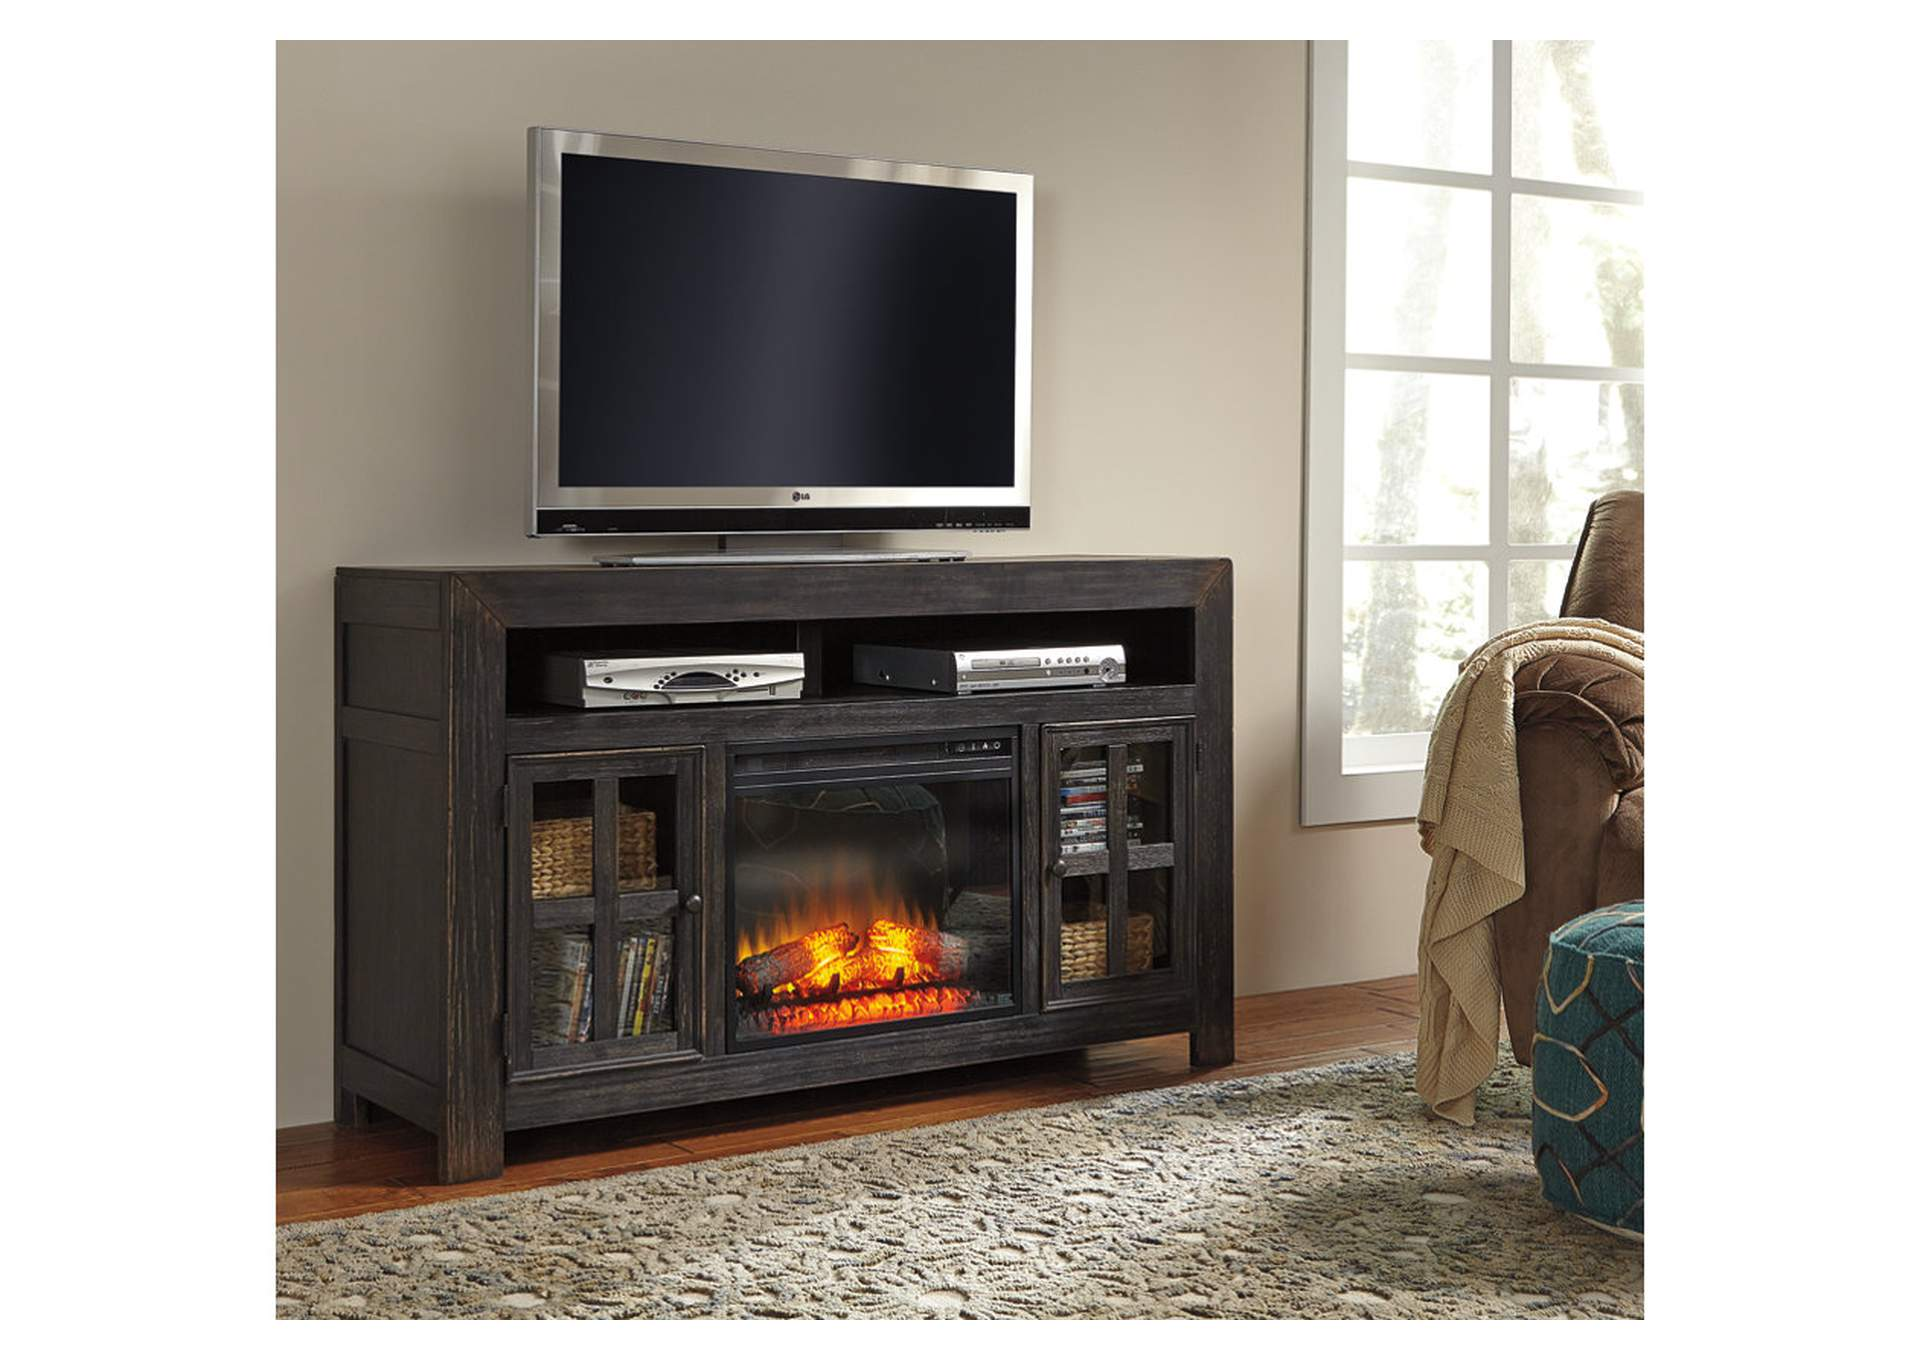 Enjoyable Rogness Dark Brown Lg Tv Stand With Wide Fireplace Insert Complete Home Design Collection Barbaintelli Responsecom